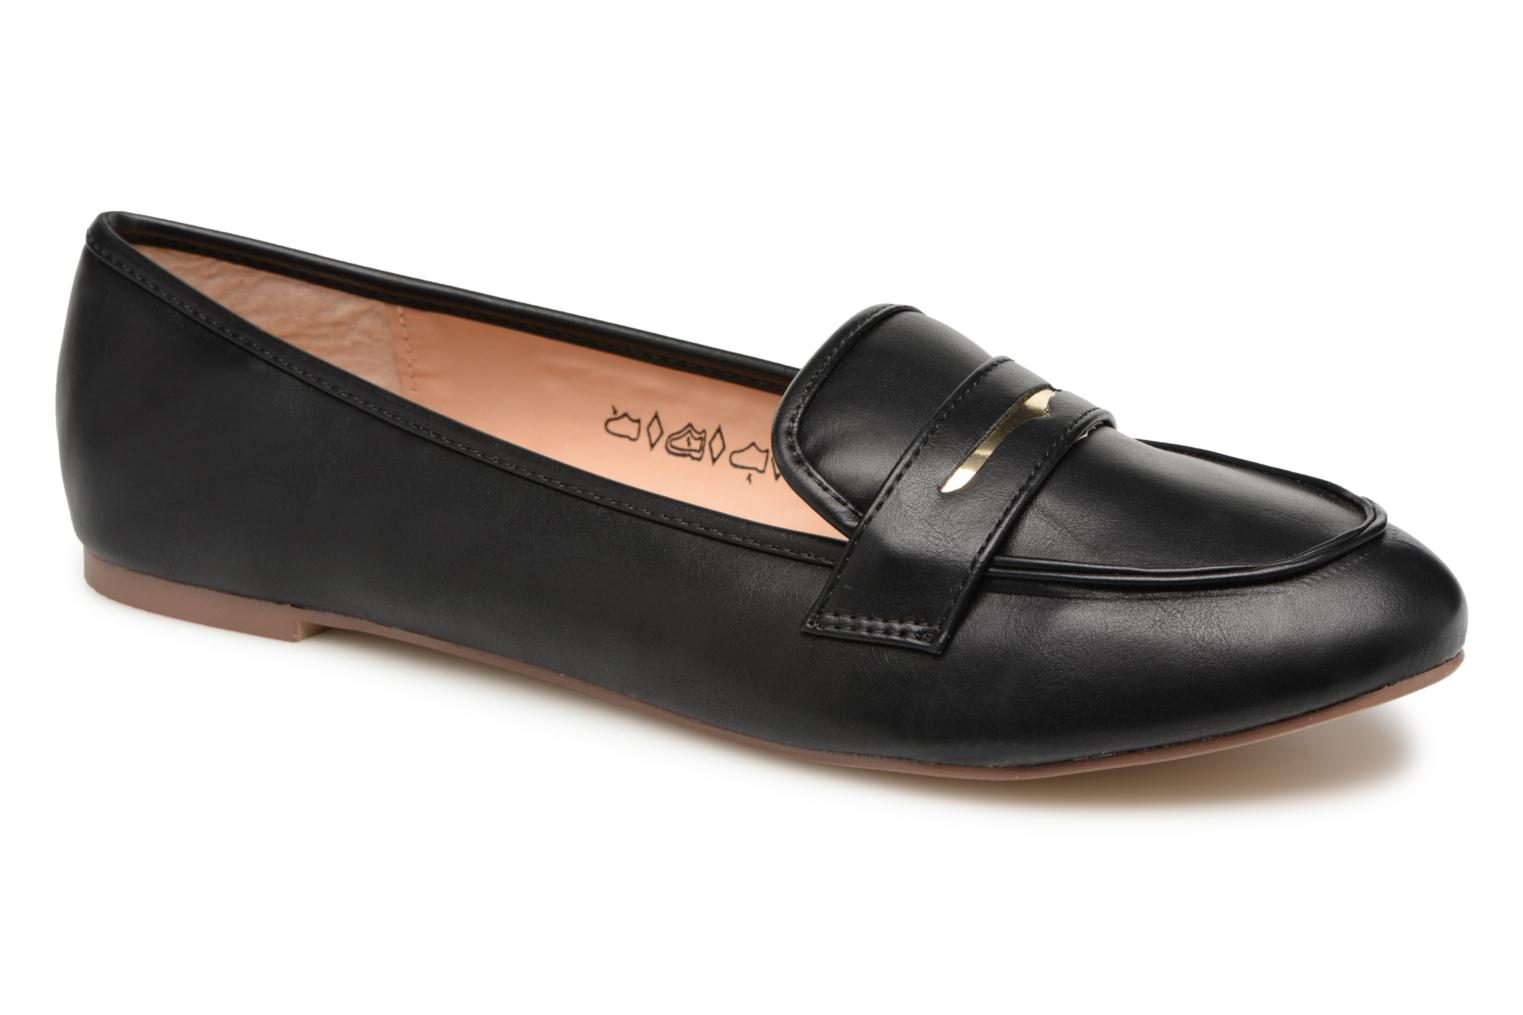 Mujer I Love Shoes Fimoc Size + Mocasines Negro